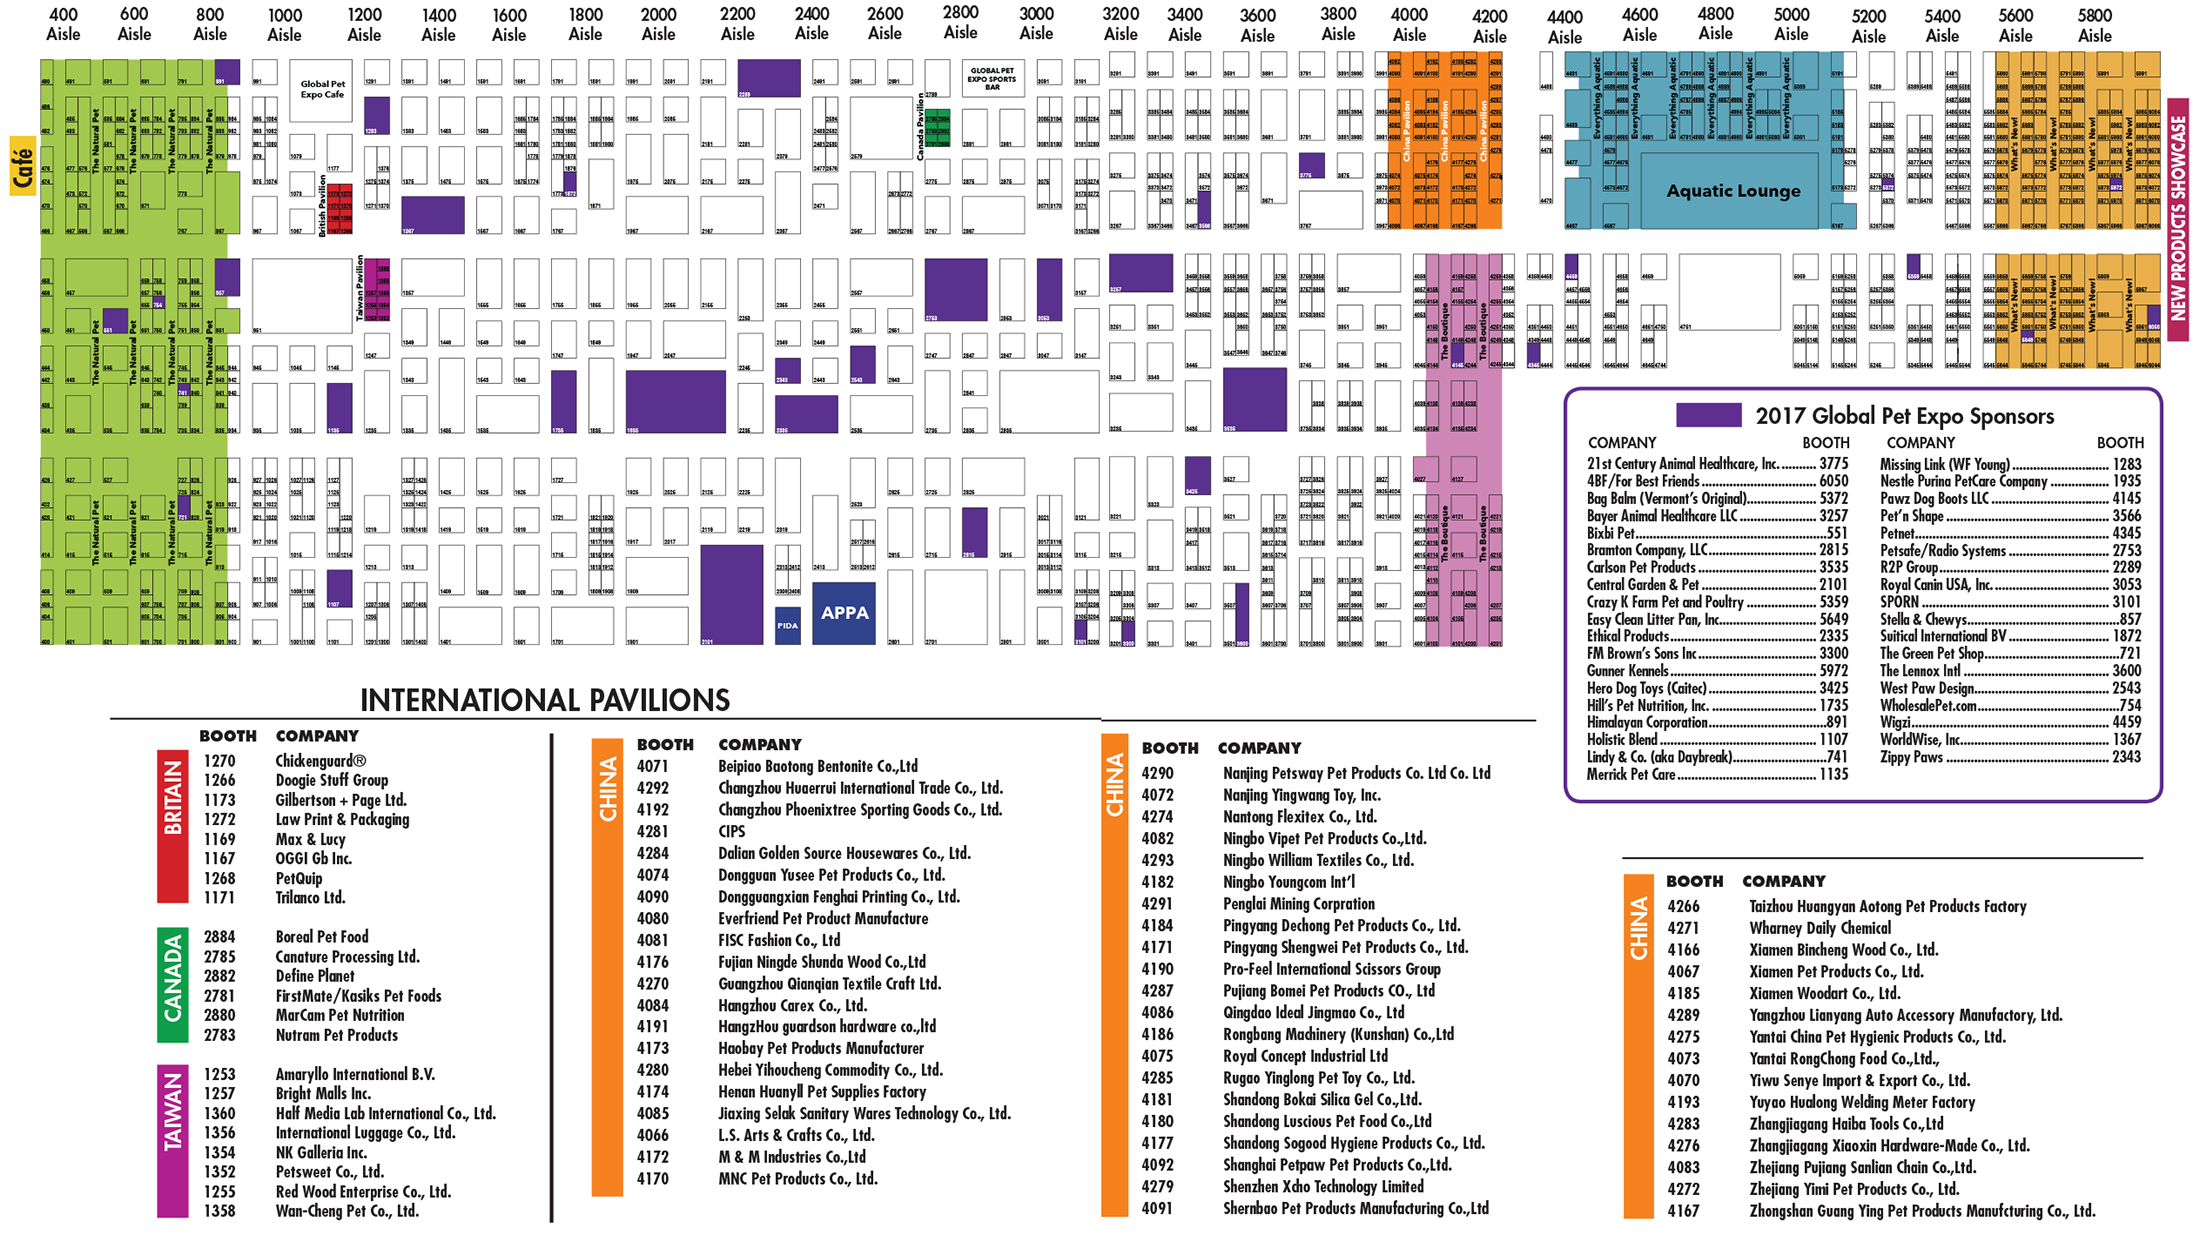 eb0c9938a4 Pet Business - Global Pet Expo Show Directory 2017 - Exhibitor Floor Plan